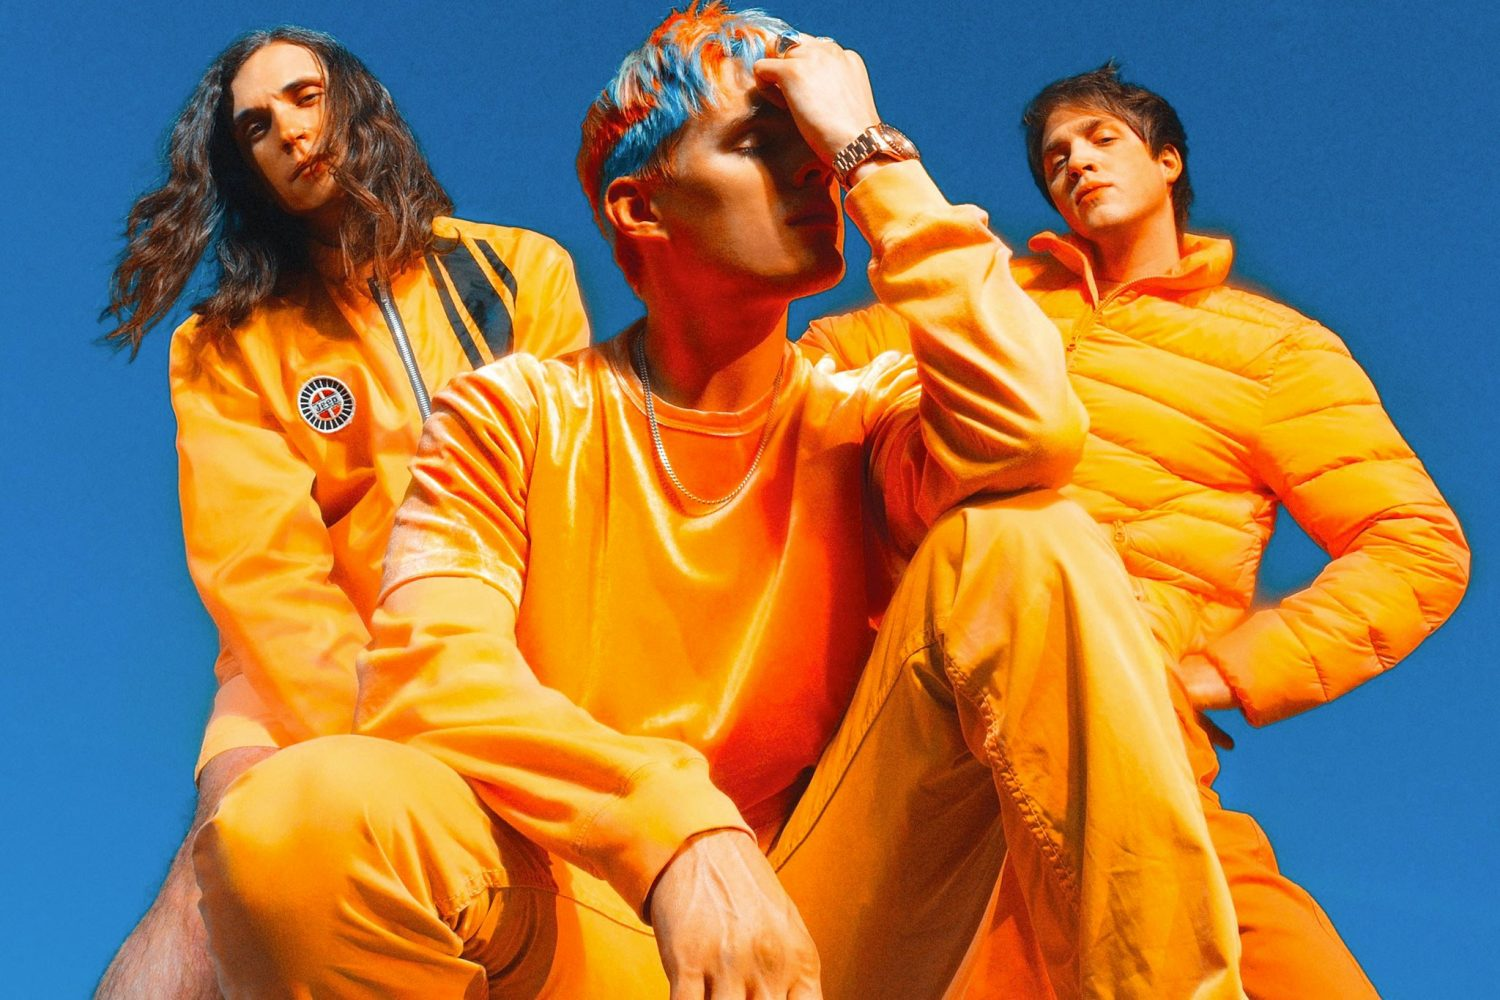 Waterparks' new album 'Greatest Hits' is coming this May